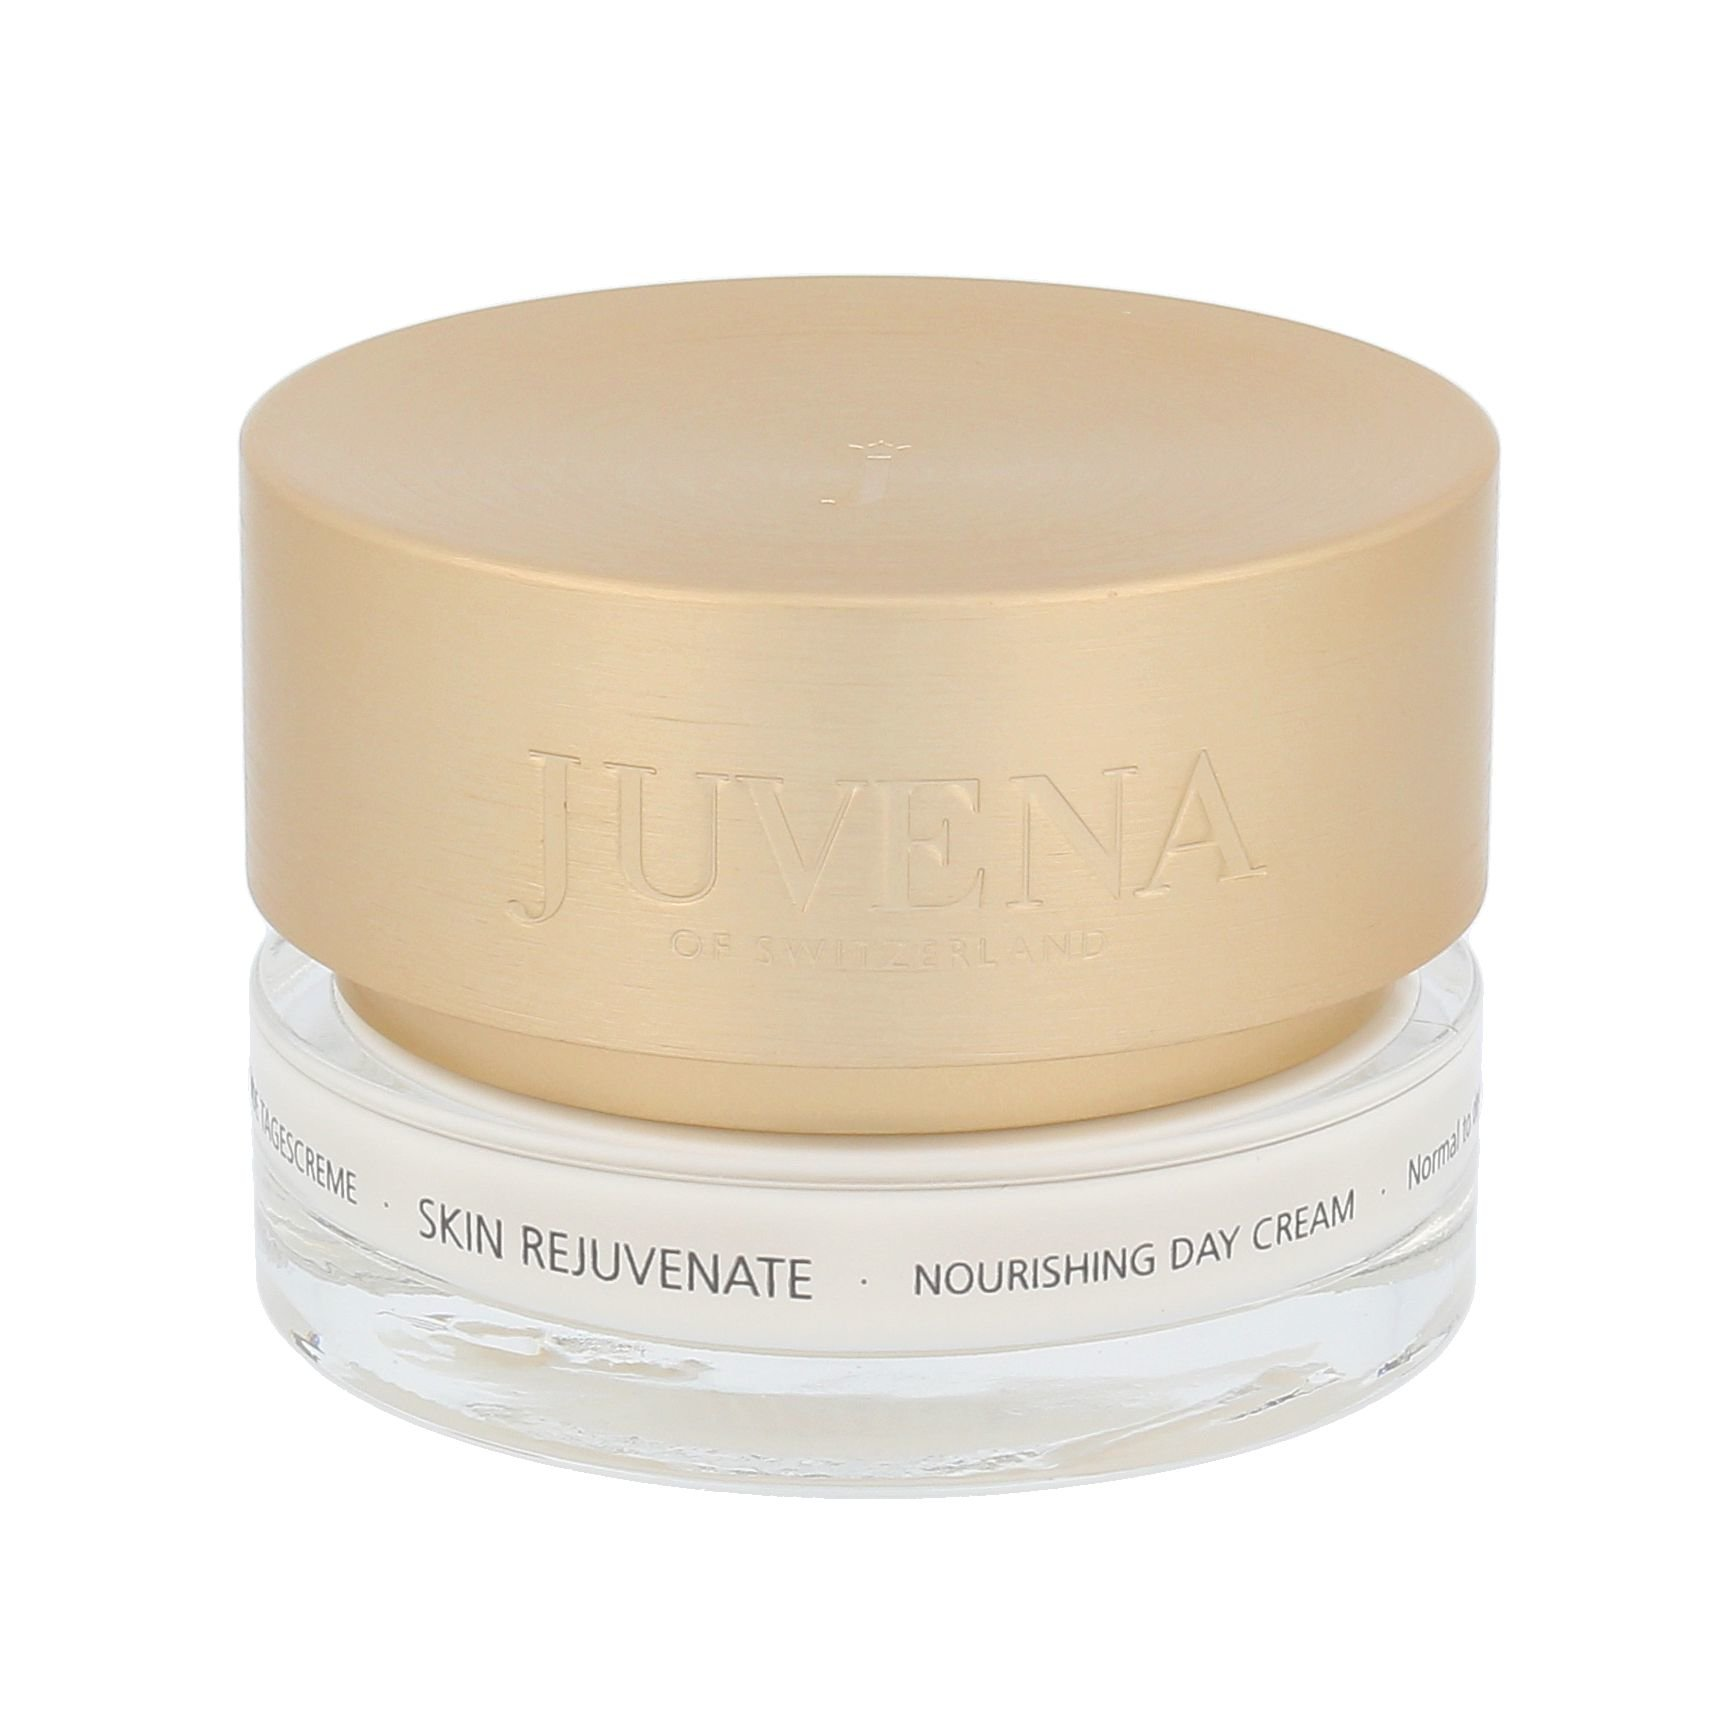 Juvena Skin Rejuvenate Nourishing Cosmetic 50ml